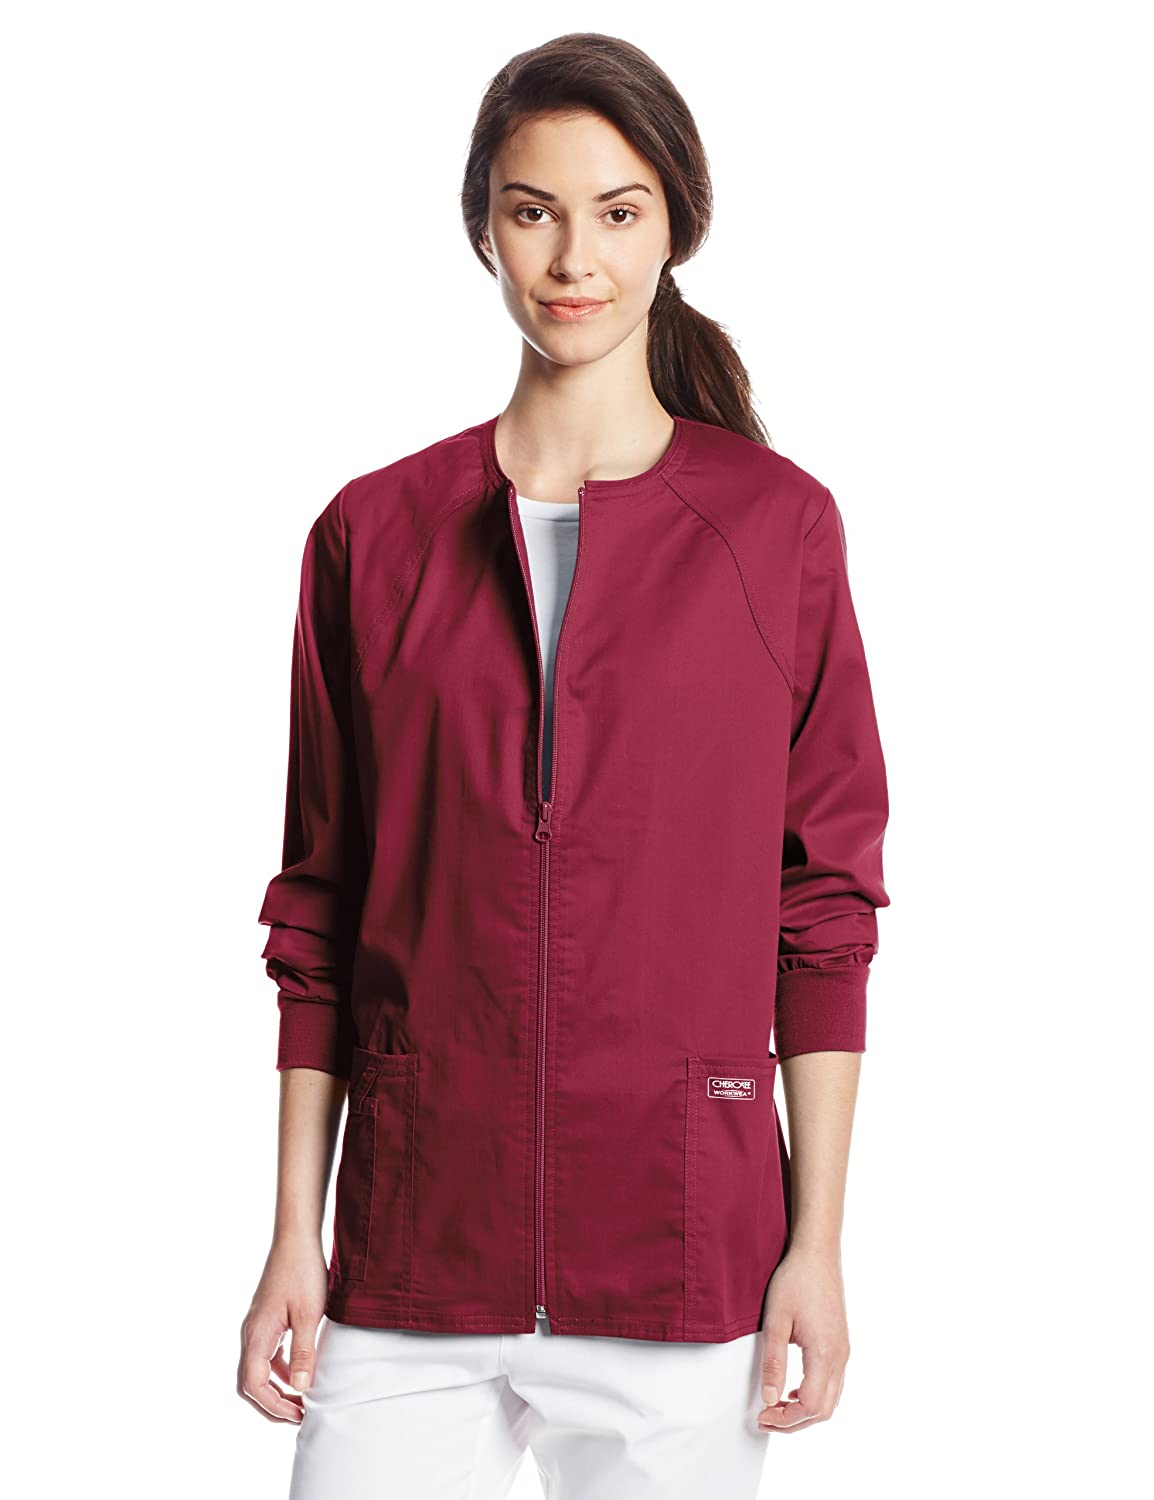 Cherokee Women's Workwear Scrubs Core Stretch Zip-Front Warm-Up Jacket 4315